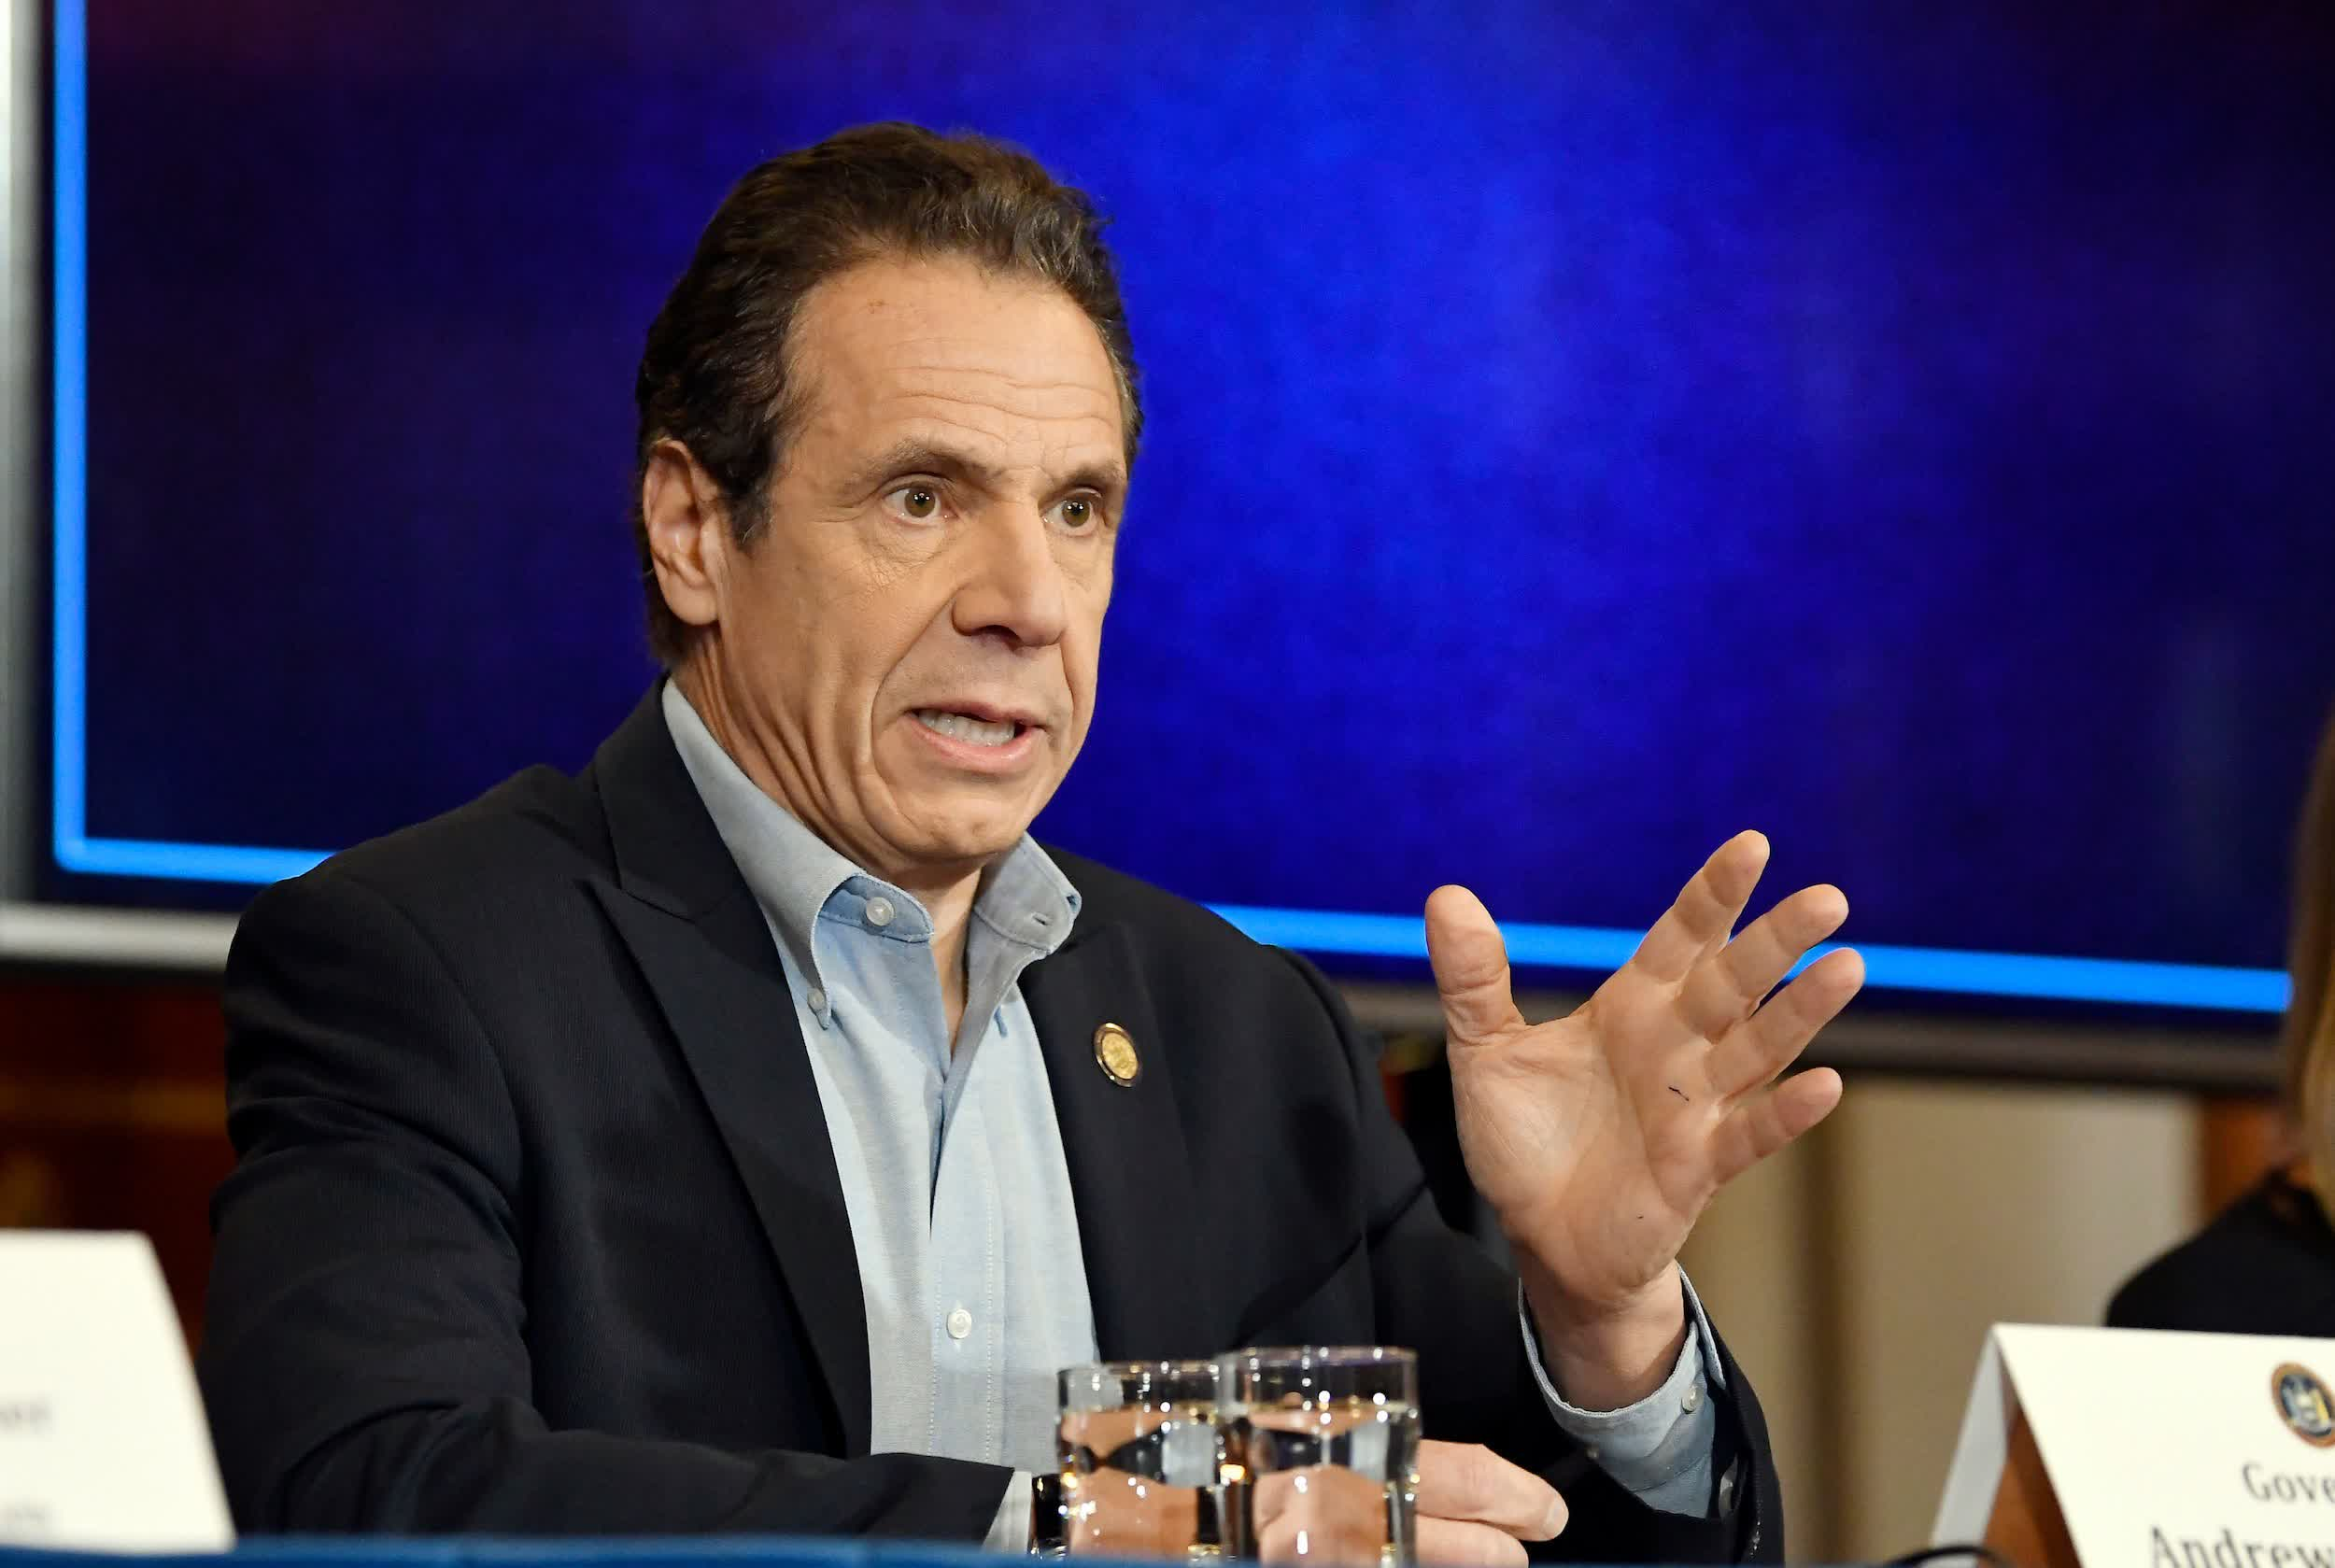 New York's new low-income broadband law is already under fire by Big Telecom